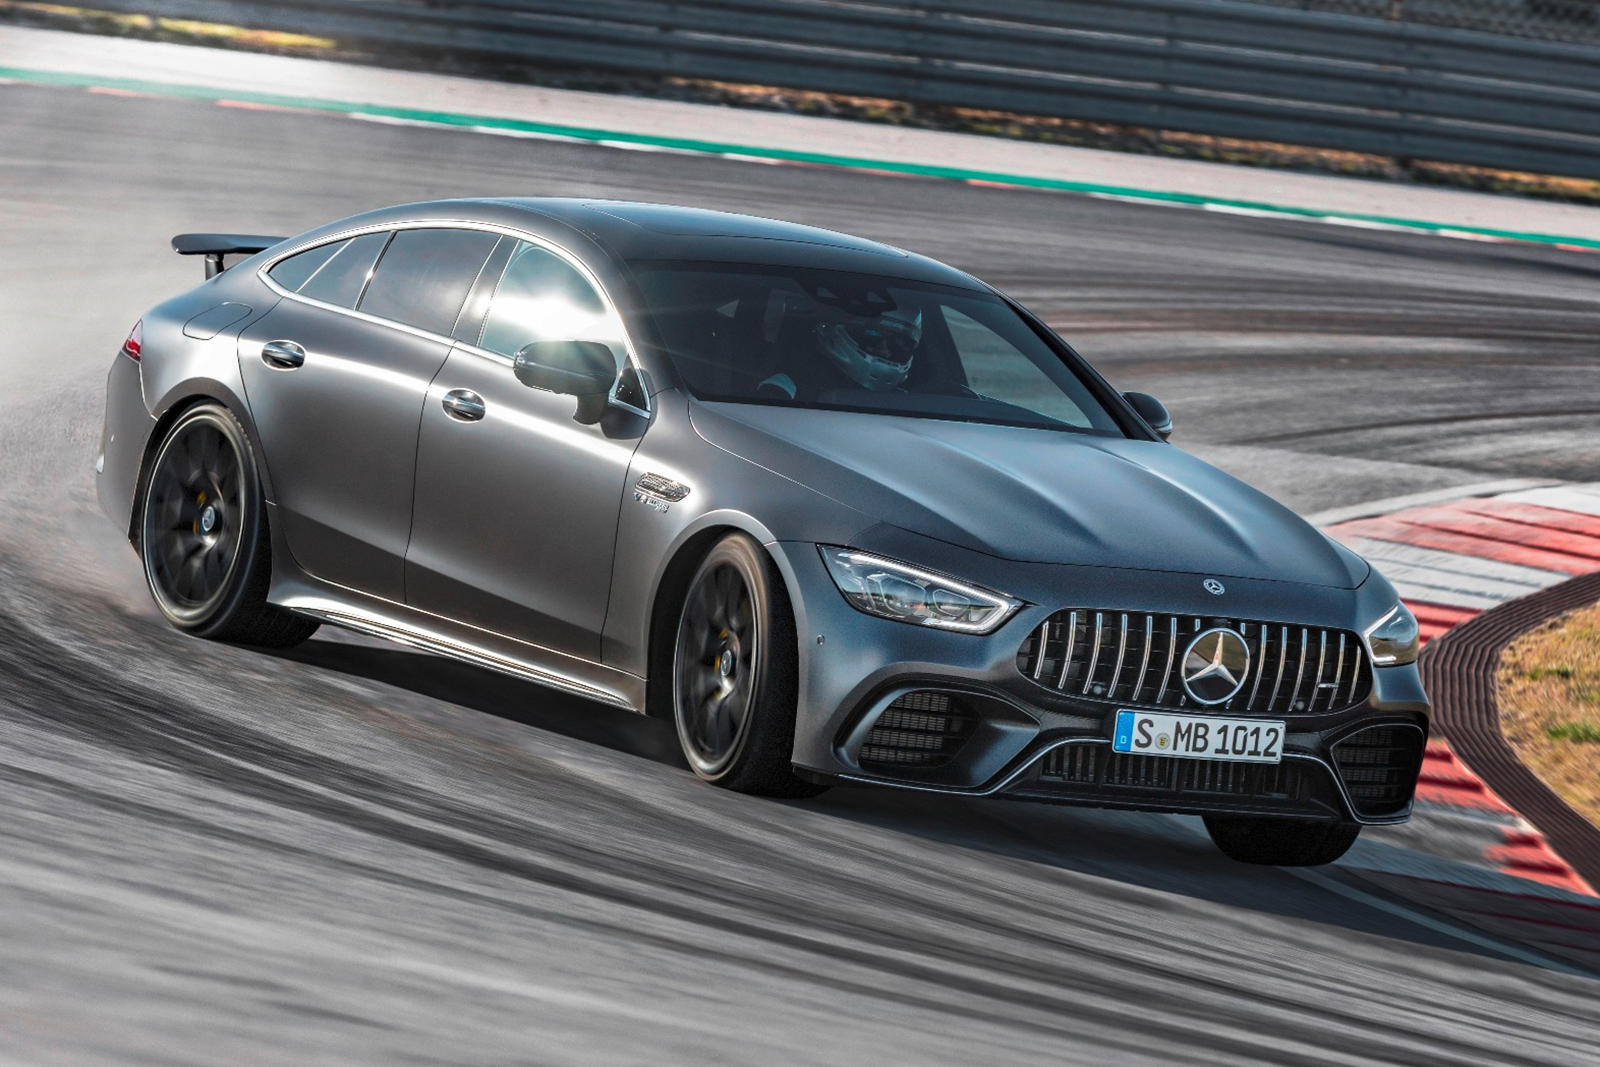 Mercedes Amg Gt 4 Door Coupe Gets Eye Watering Price Tag Carbuzz